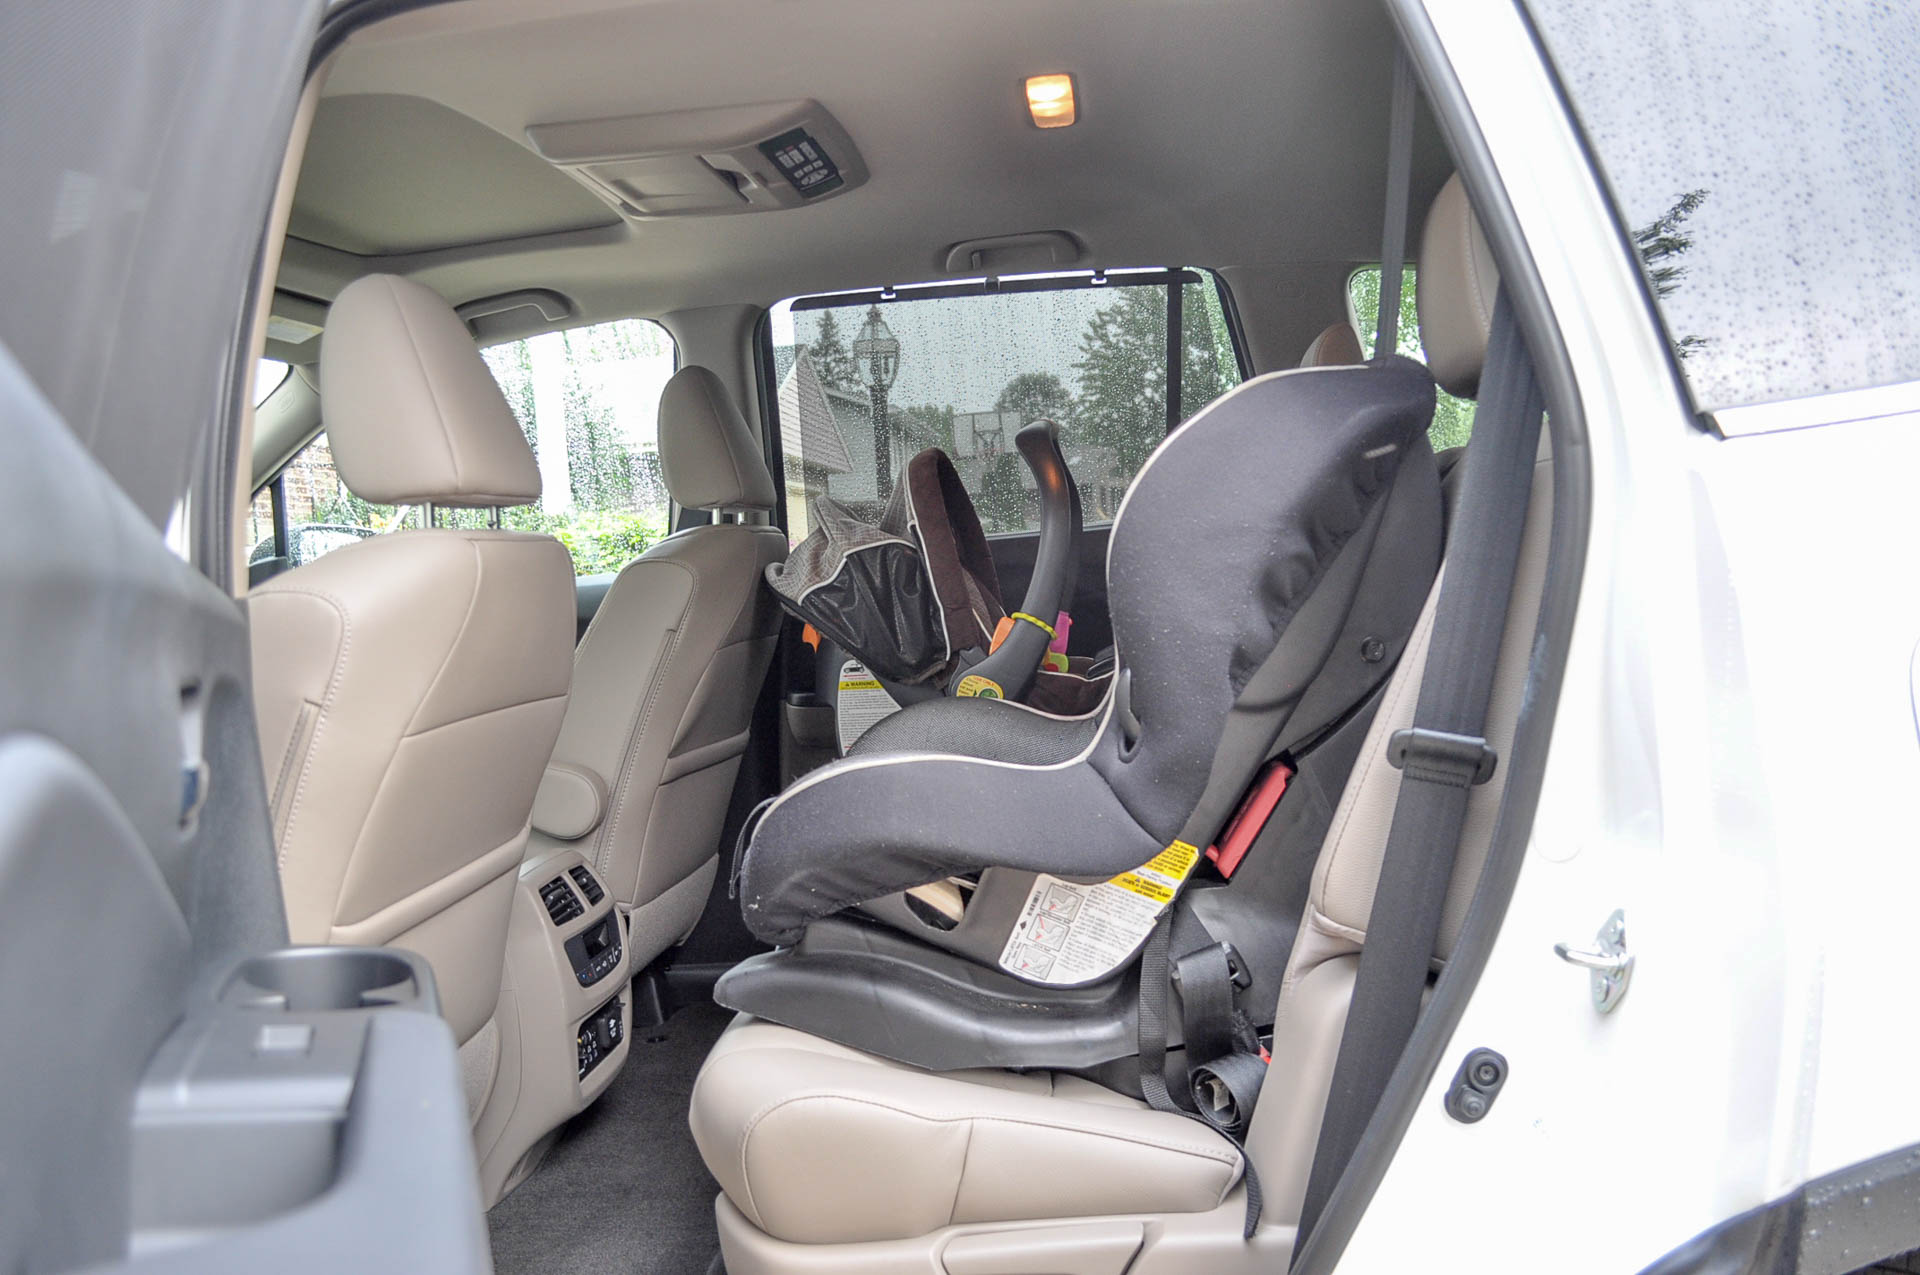 2017 Honda Pilot Long Term Road Test From Car Seats To Diaper Bags Hauling The Family